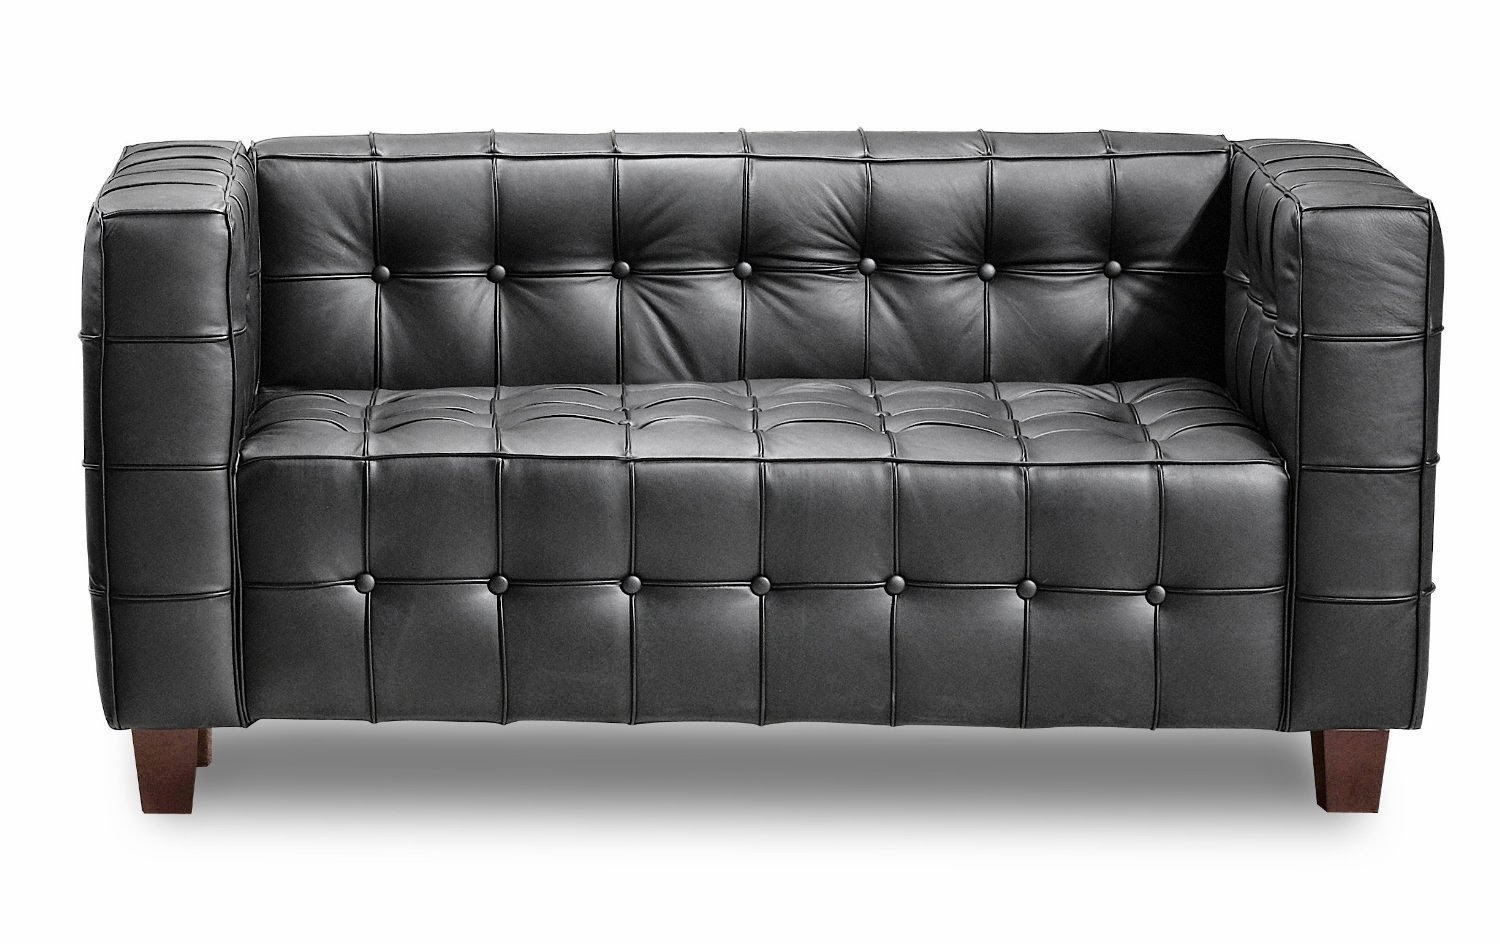 contemporary chesterfield sofa chesterfield sofa leather design your life thesofa. Black Bedroom Furniture Sets. Home Design Ideas